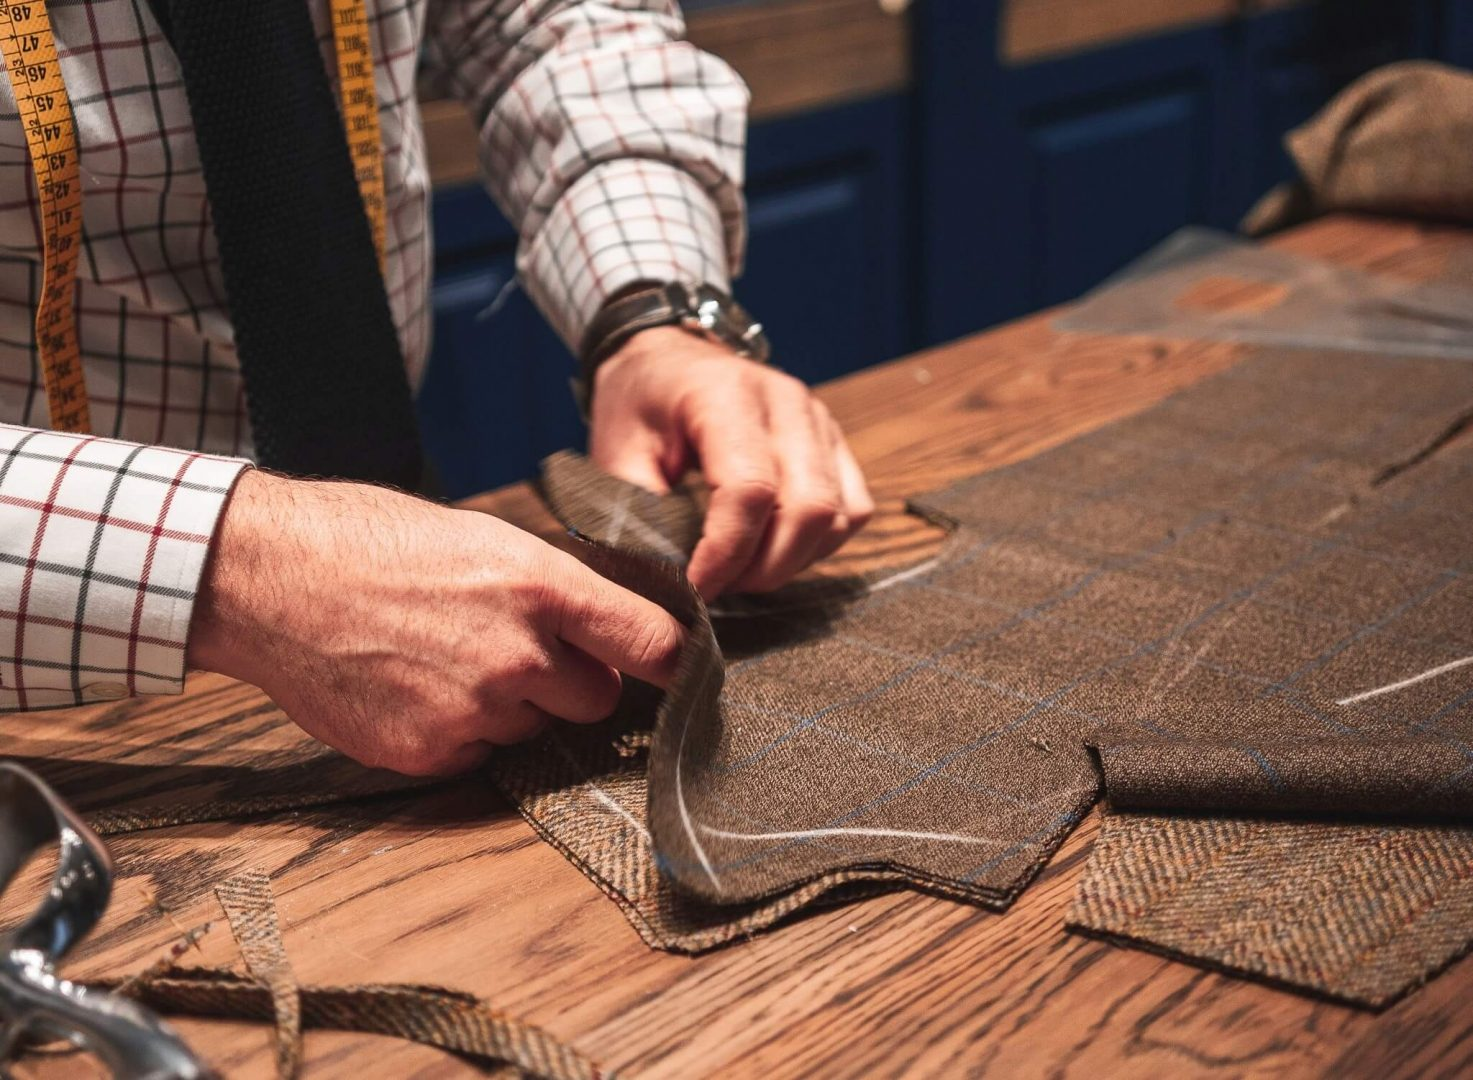 Much like sewing a suit, creating a custom theme is a process of hand-picking tailored elements and uniting them in a breathtaking website.